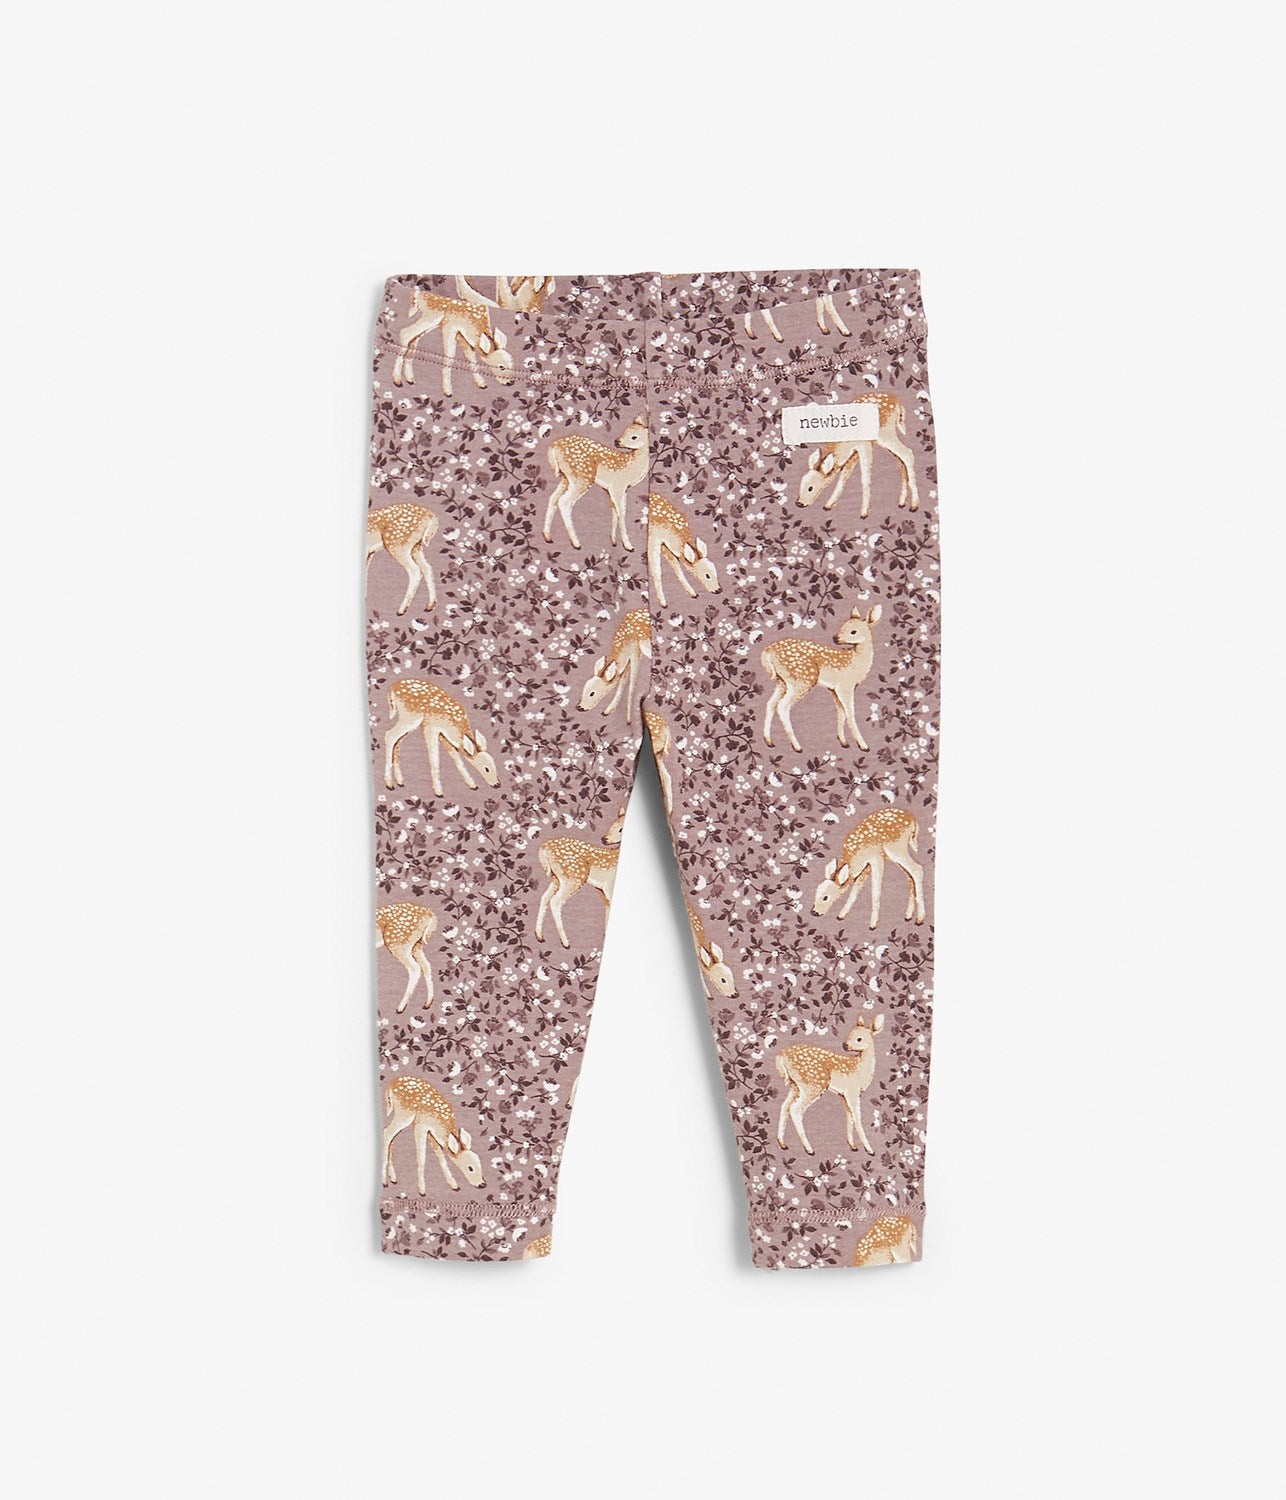 Baby deer and floral patterned leggings